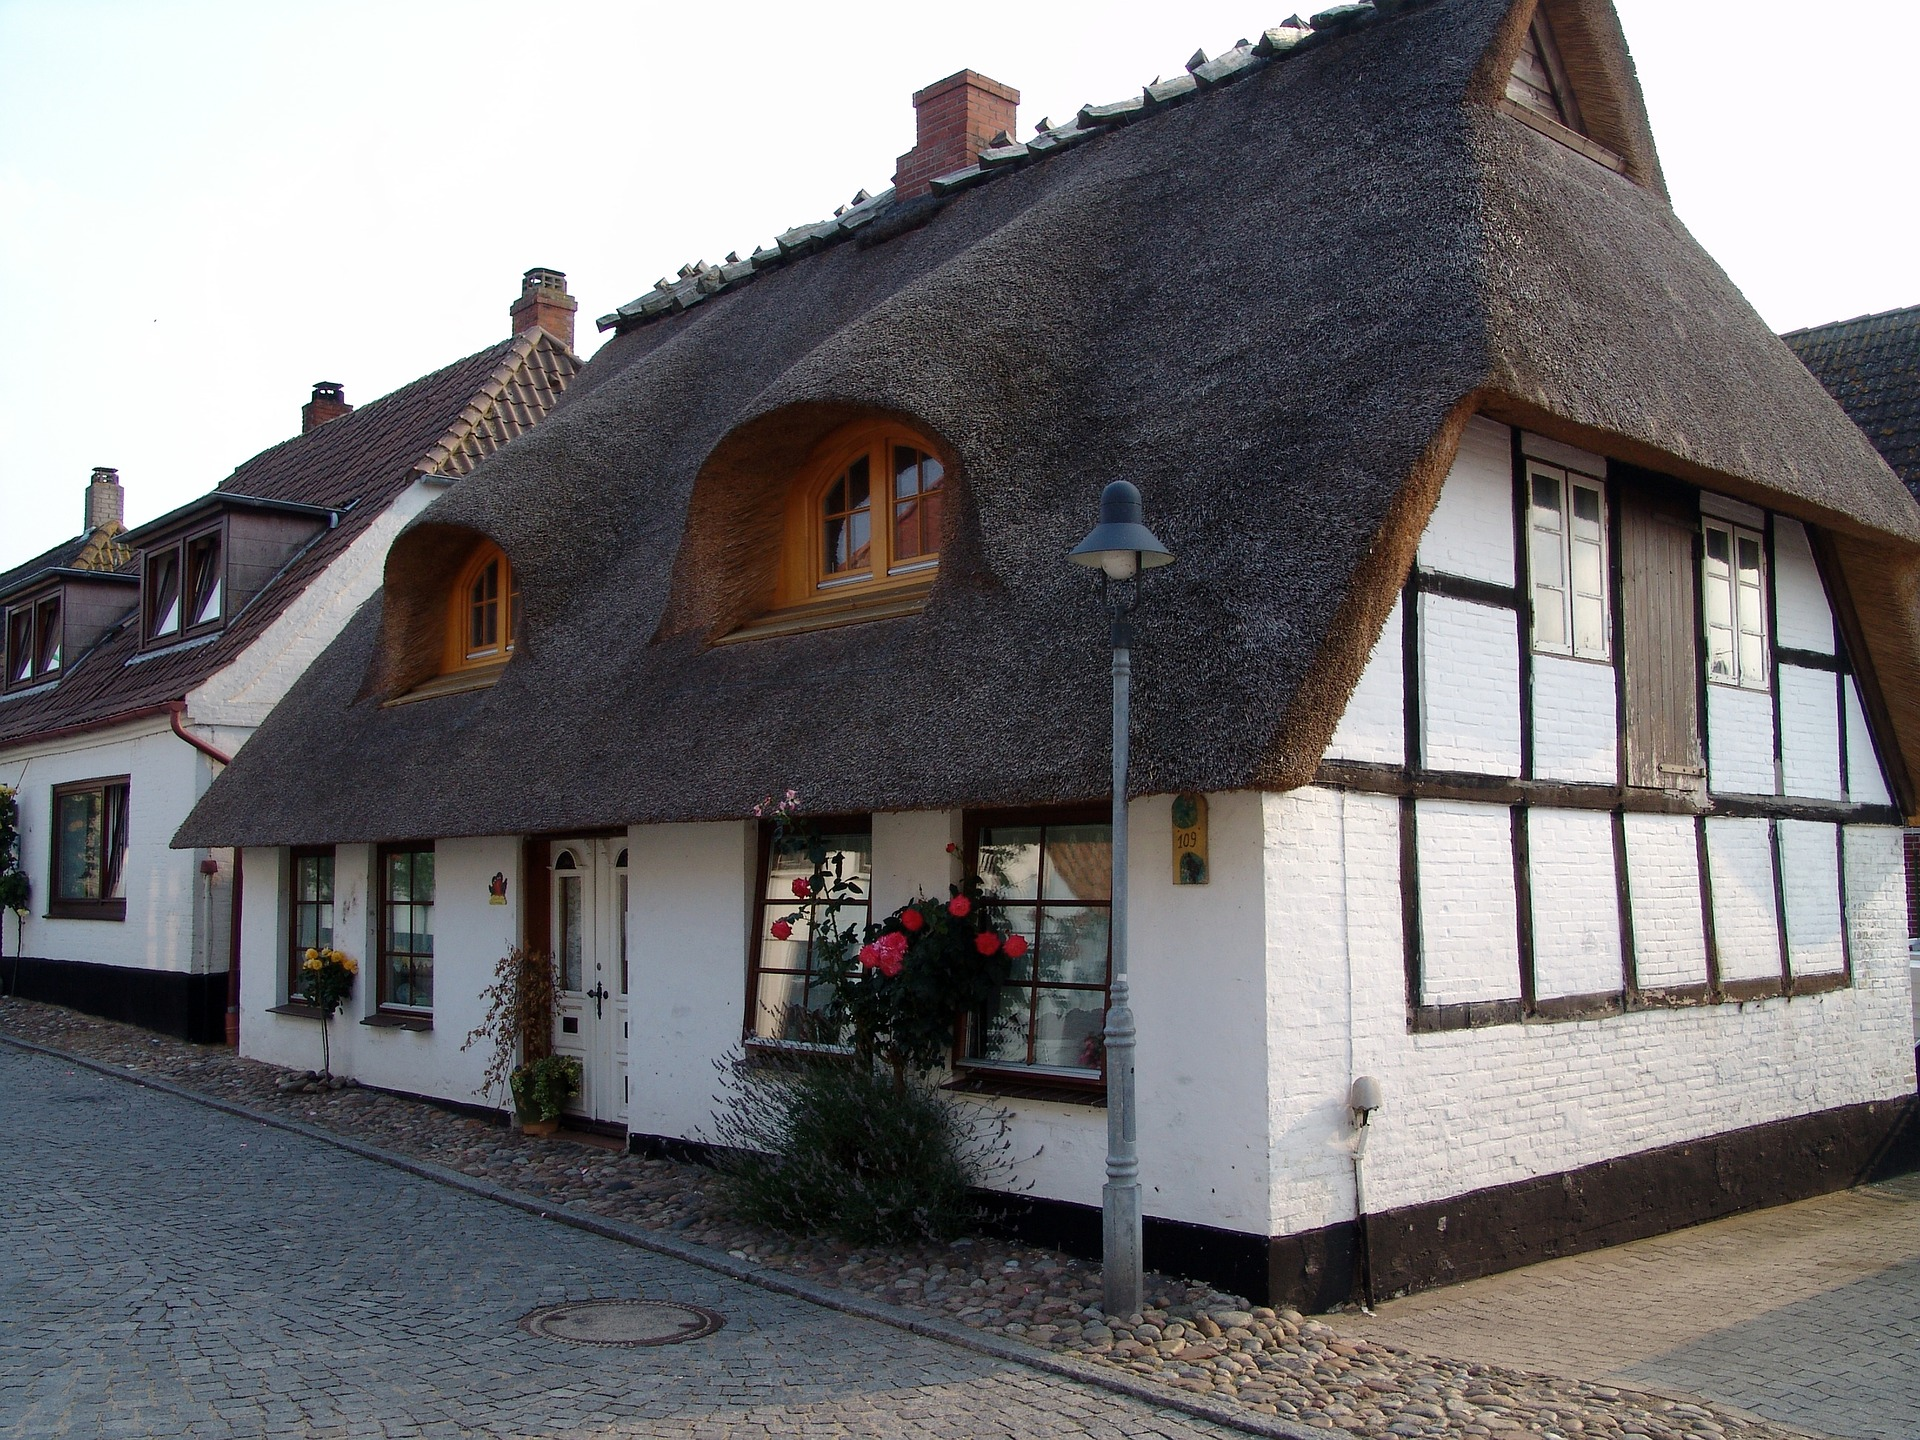 Are Thatched Roofs Expensive To Replace